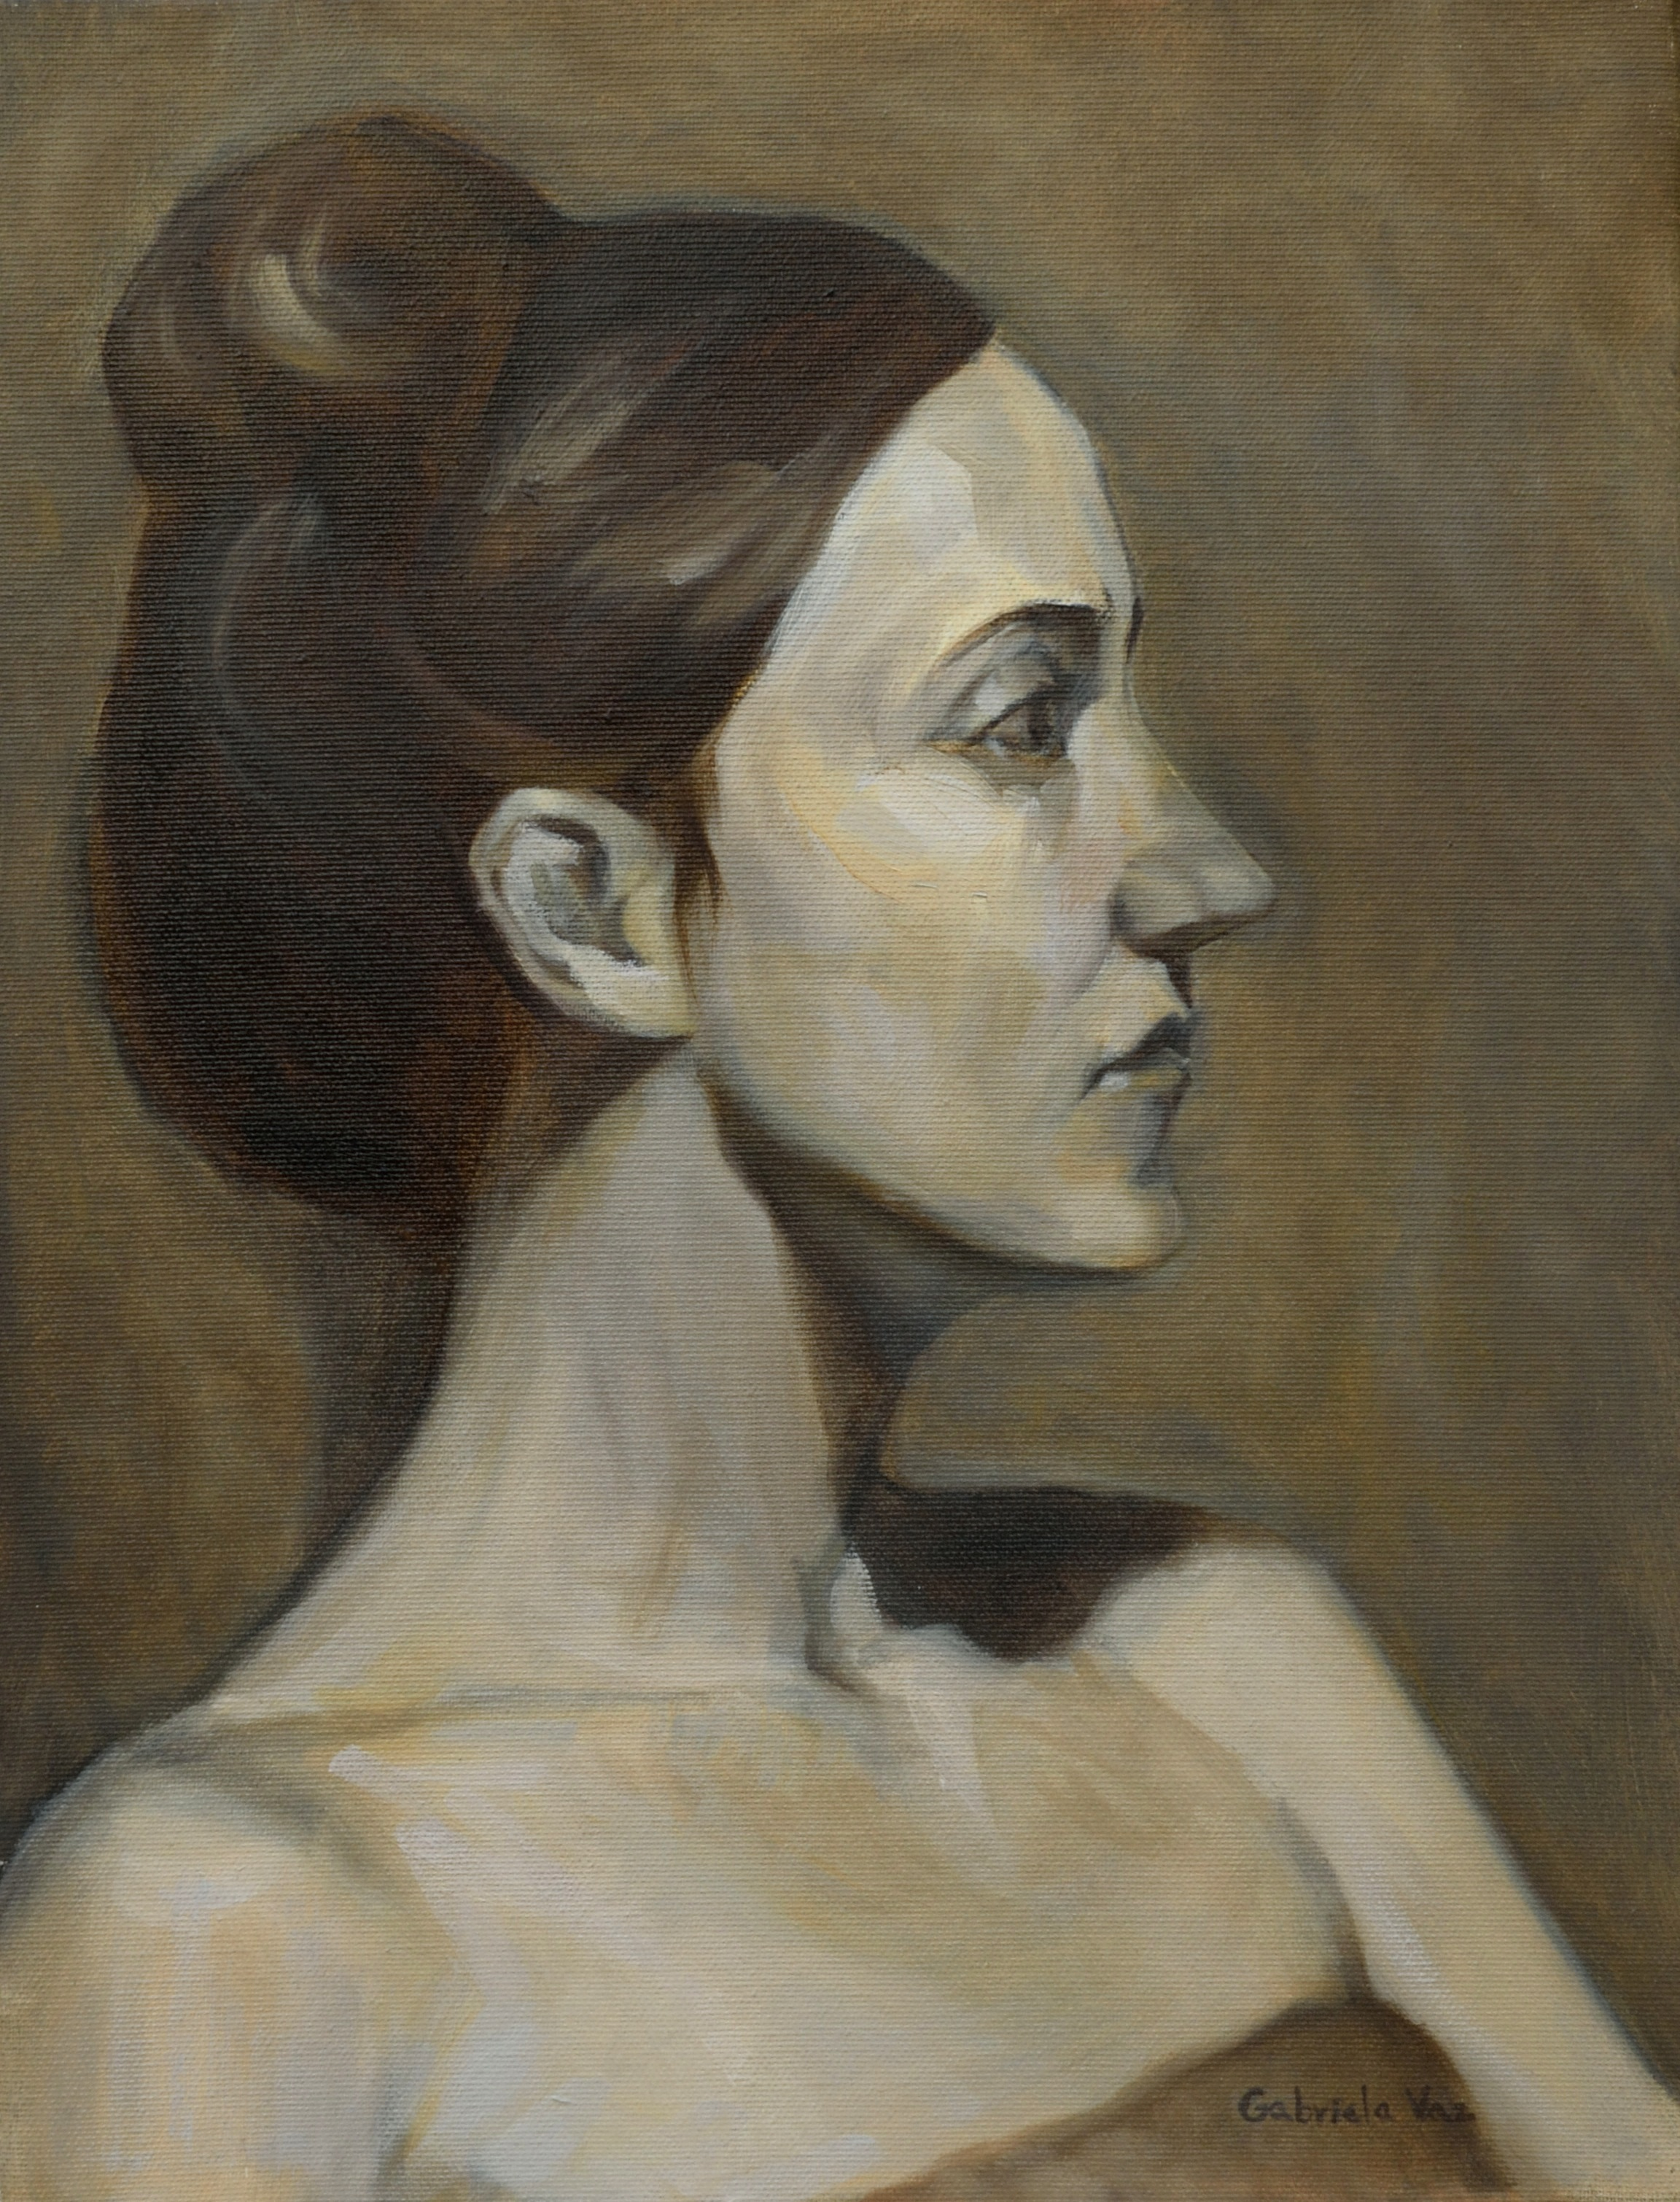 The french girl, oil on canvas, 45 x 35 cm, 2017